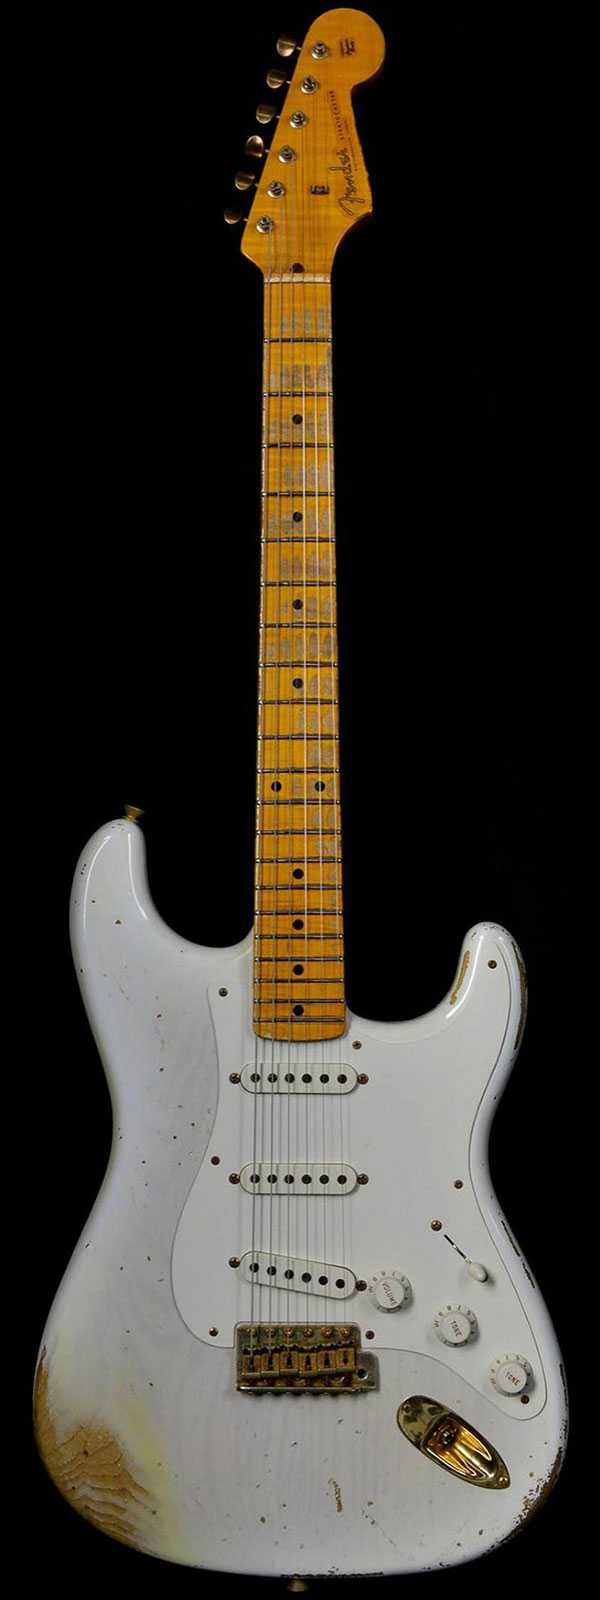 Fender 1956 Stratocaster Heavy Relic AA Flame Maple Neck Mary Kaye Blonde